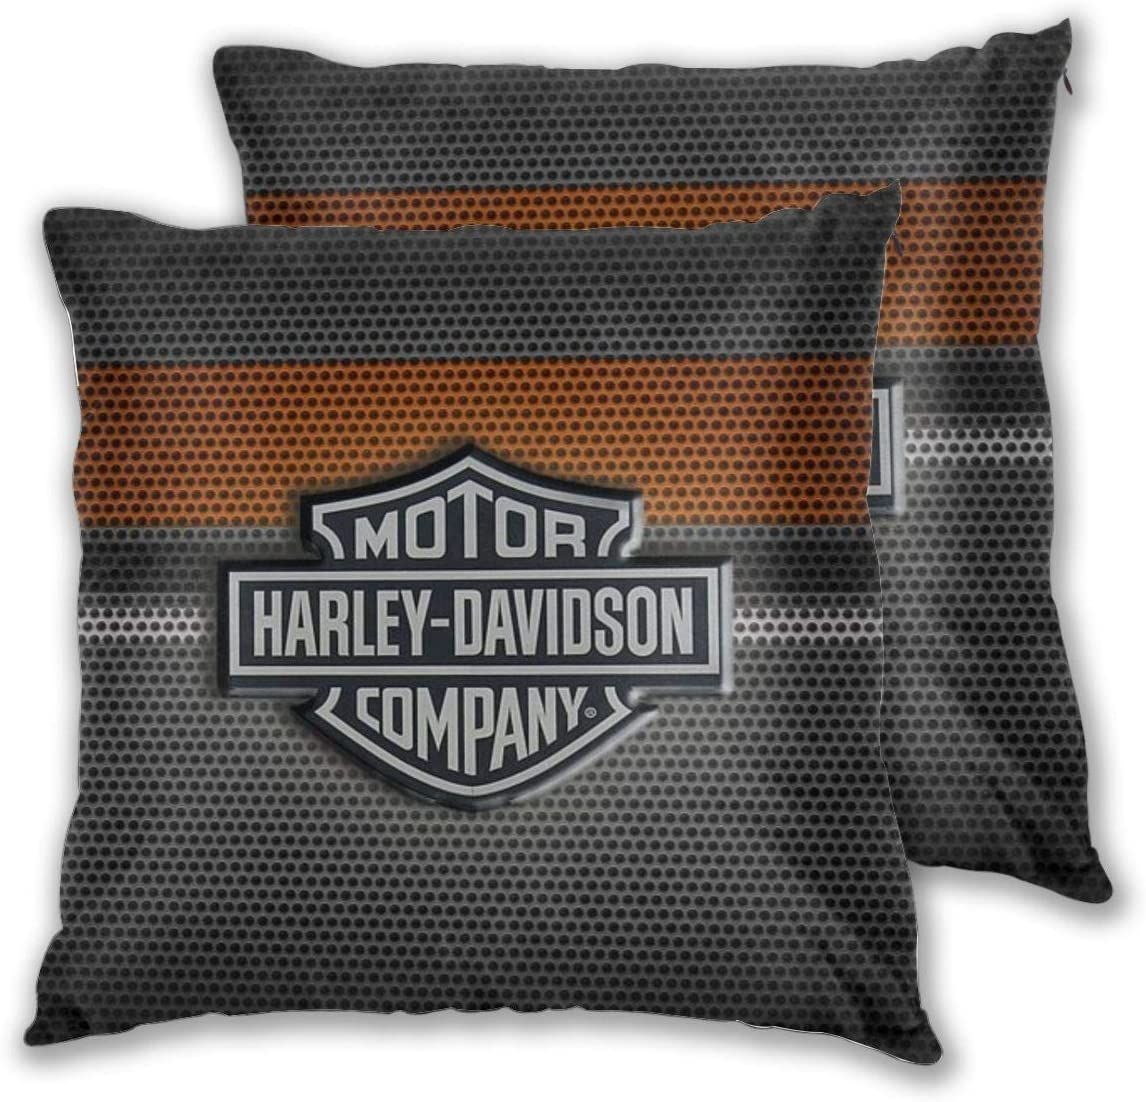 Harley Davidson Pillow Cover Pillow Covers Throw Pillow Covers Square Throw Pillow [ 1102 x 1146 Pixel ]